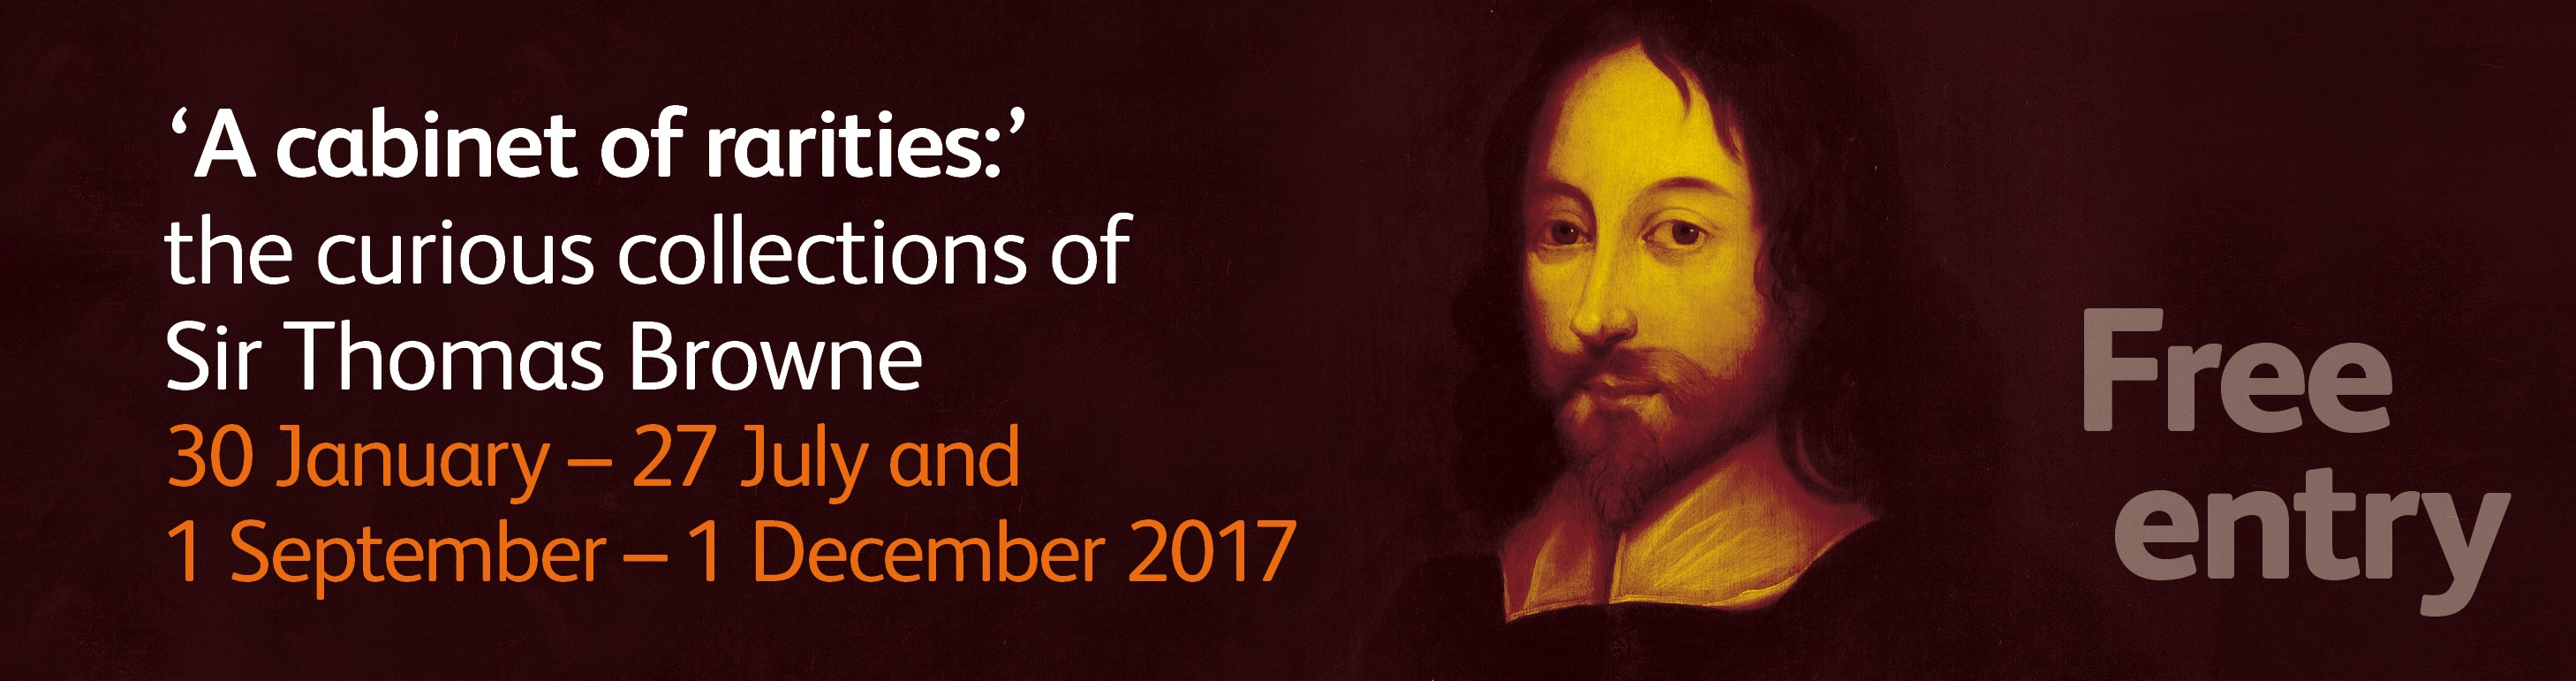 Exhibition information, Sir Thomas Browne